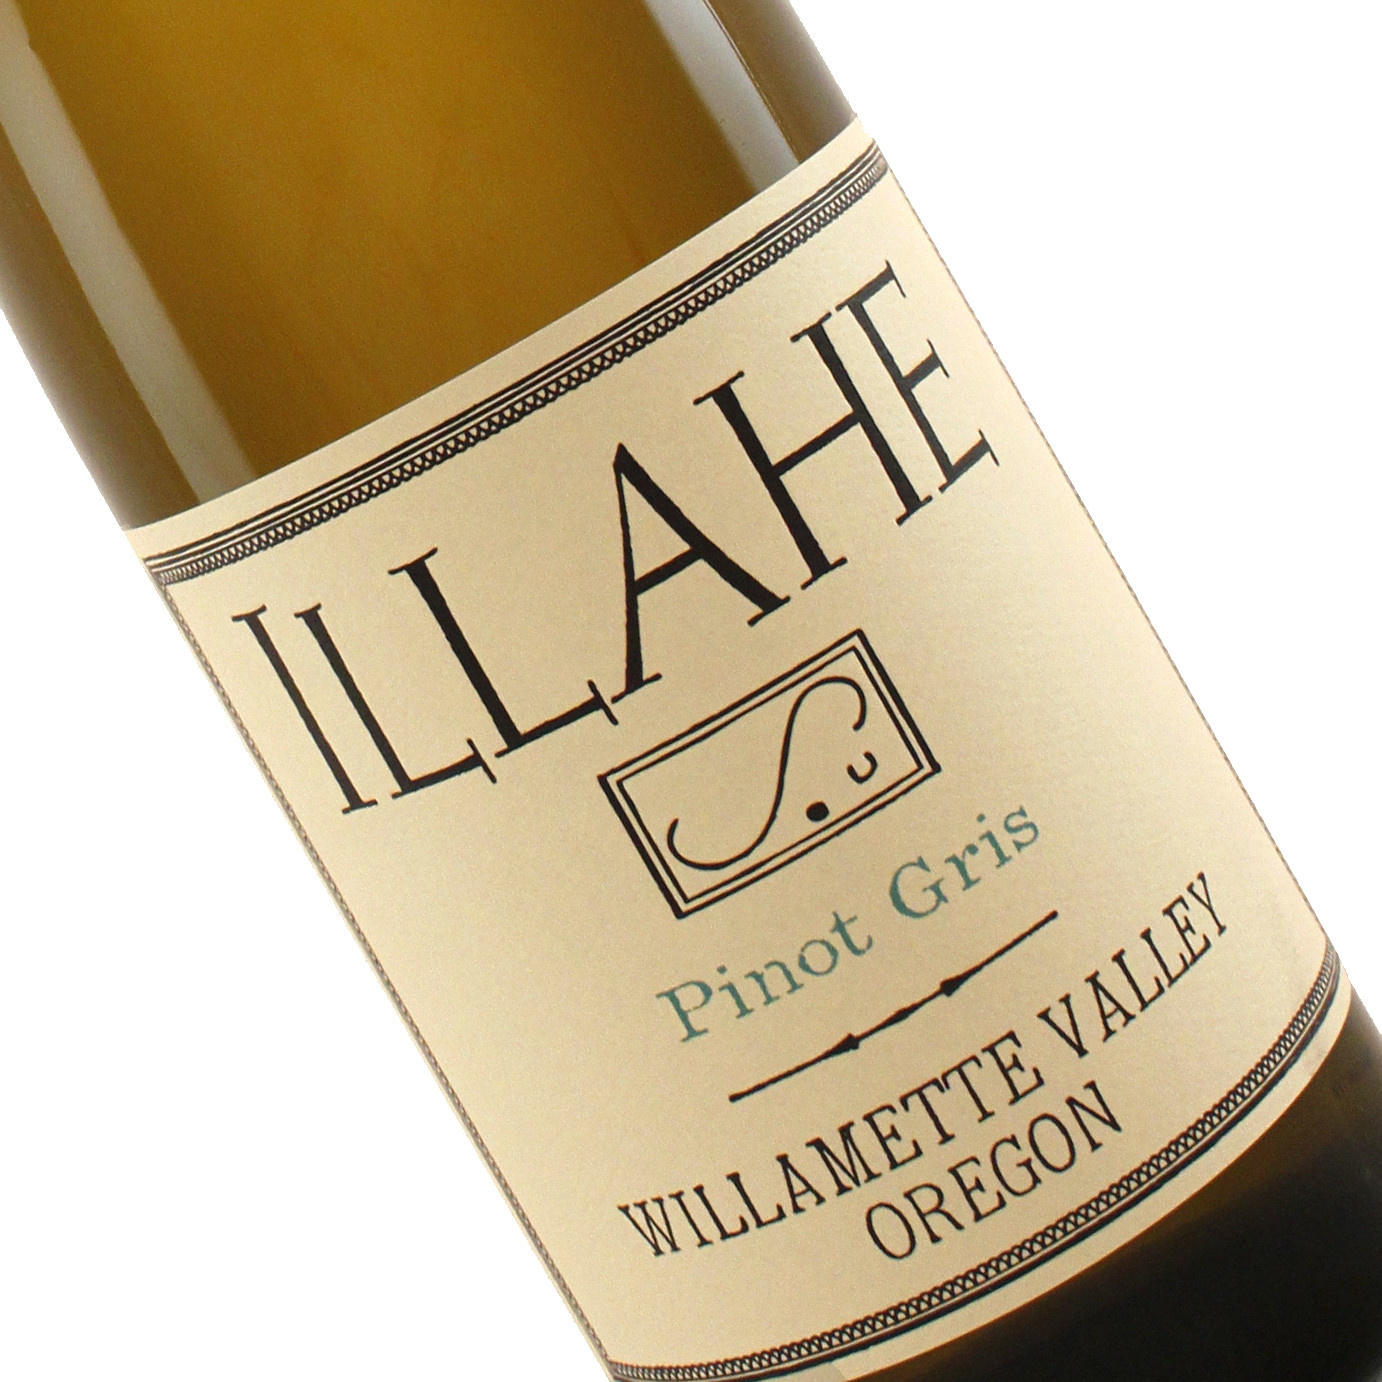 Illahe 2018 Pinot Gris Willamette Valley, Oregon